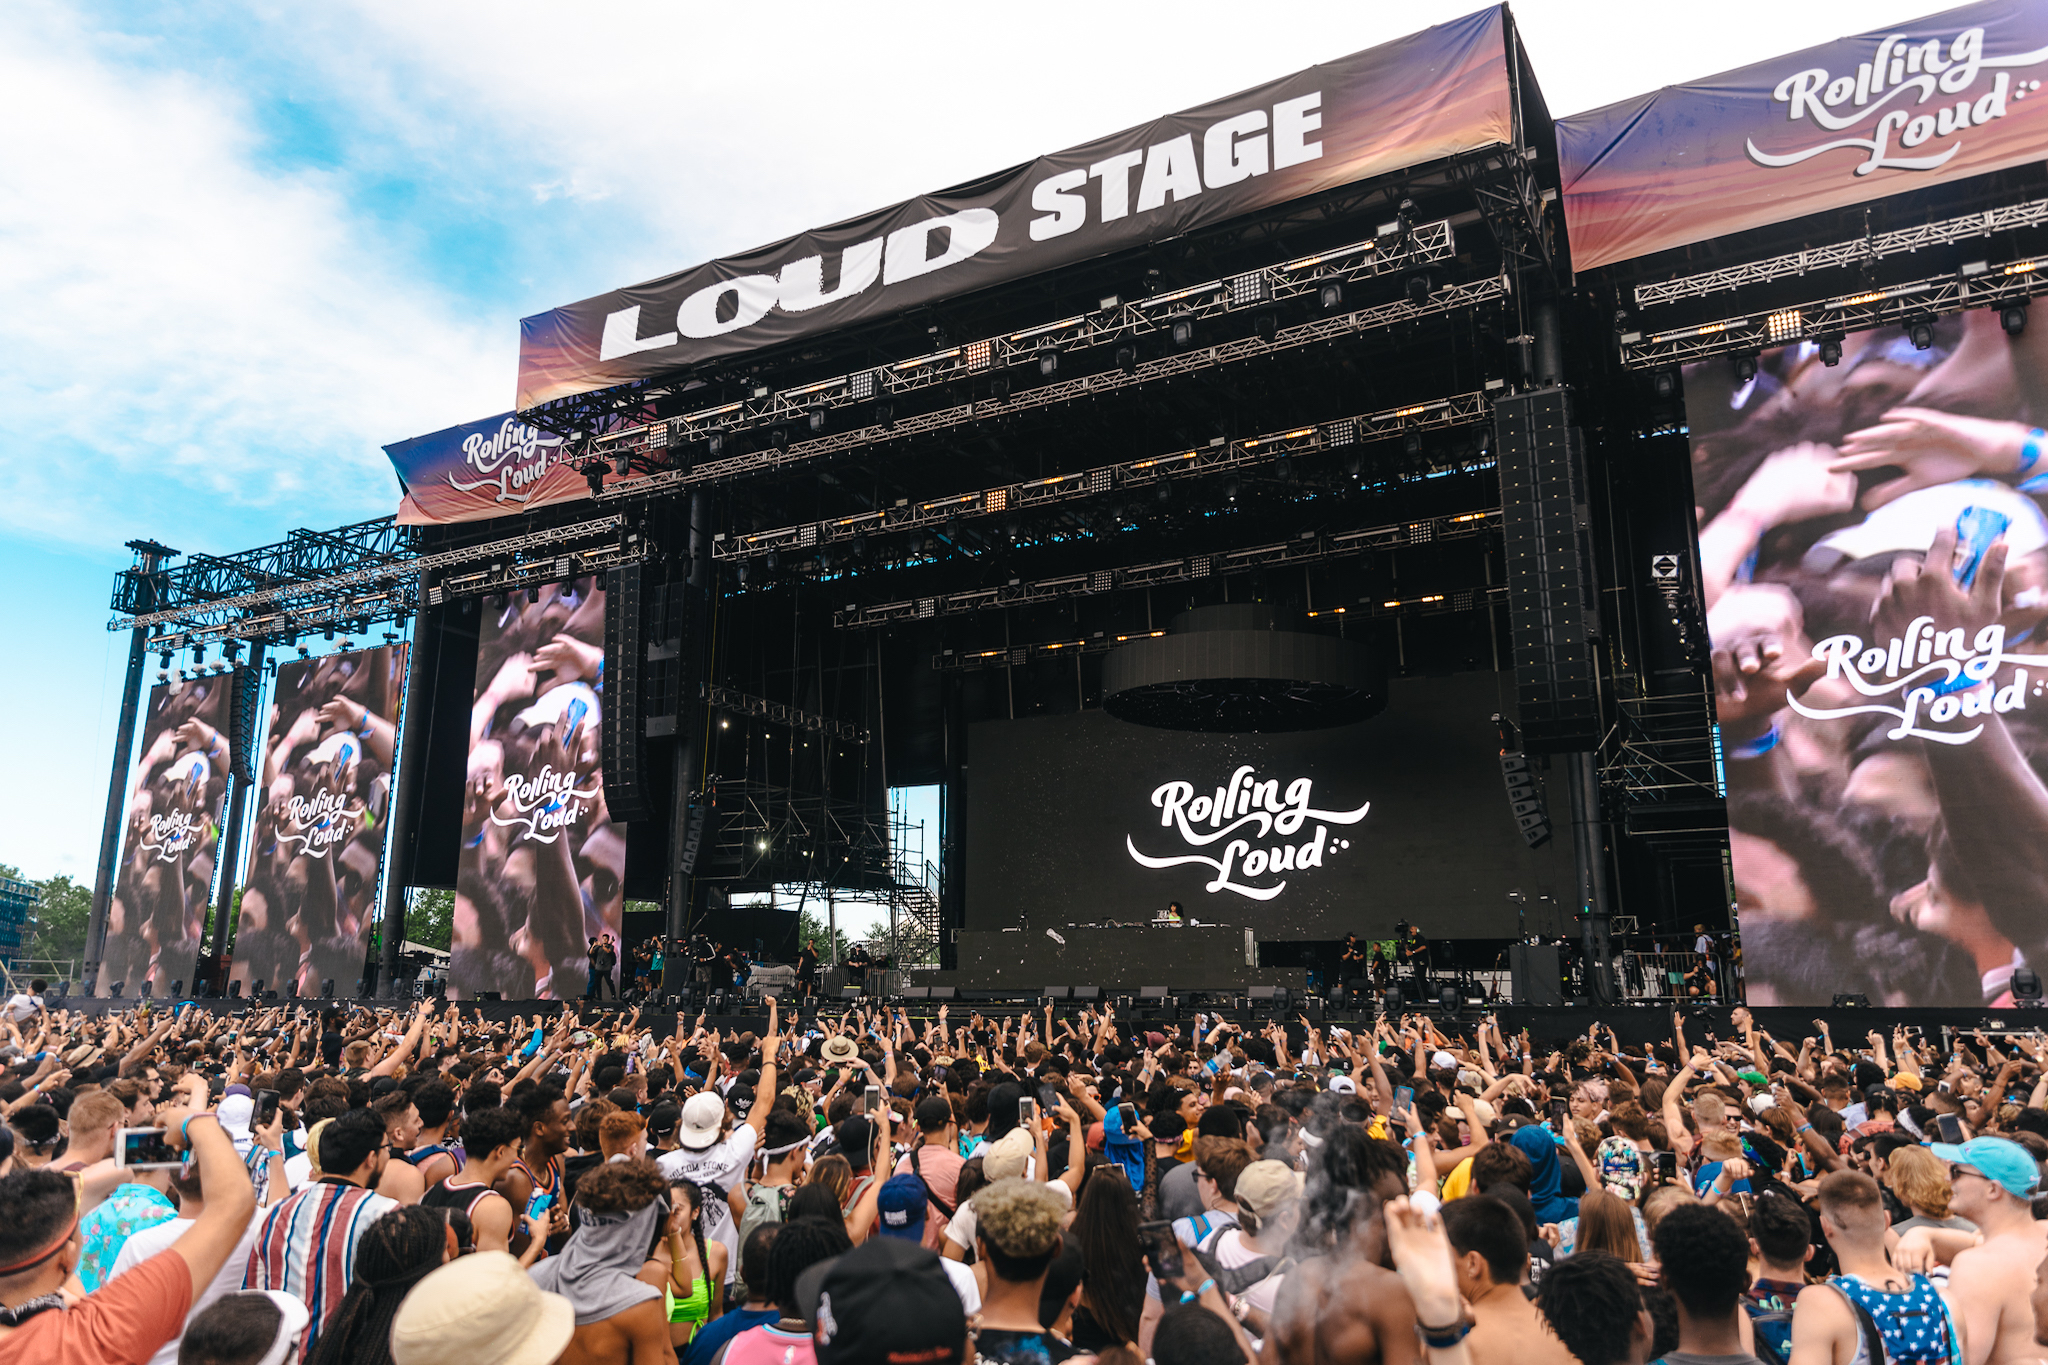 Guide to Rolling Loud Festival in Miami